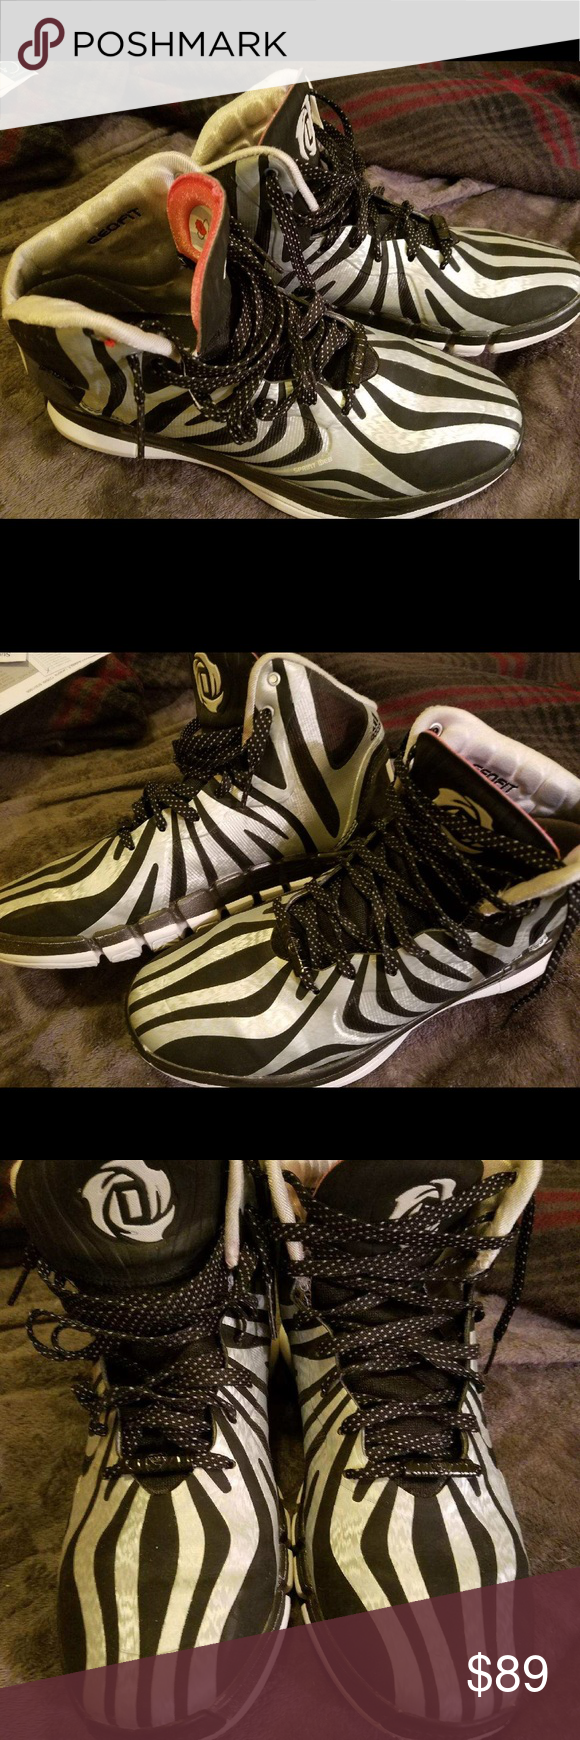 premium selection d20fb d1edf Adidas D Rose 4.5 Mens Size 9.5 Adidas D Rose 4.5 Zebra Derrick Rose Very  gently used Excellent condition Mens 9.5 adidas Shoes Athletic Shoes